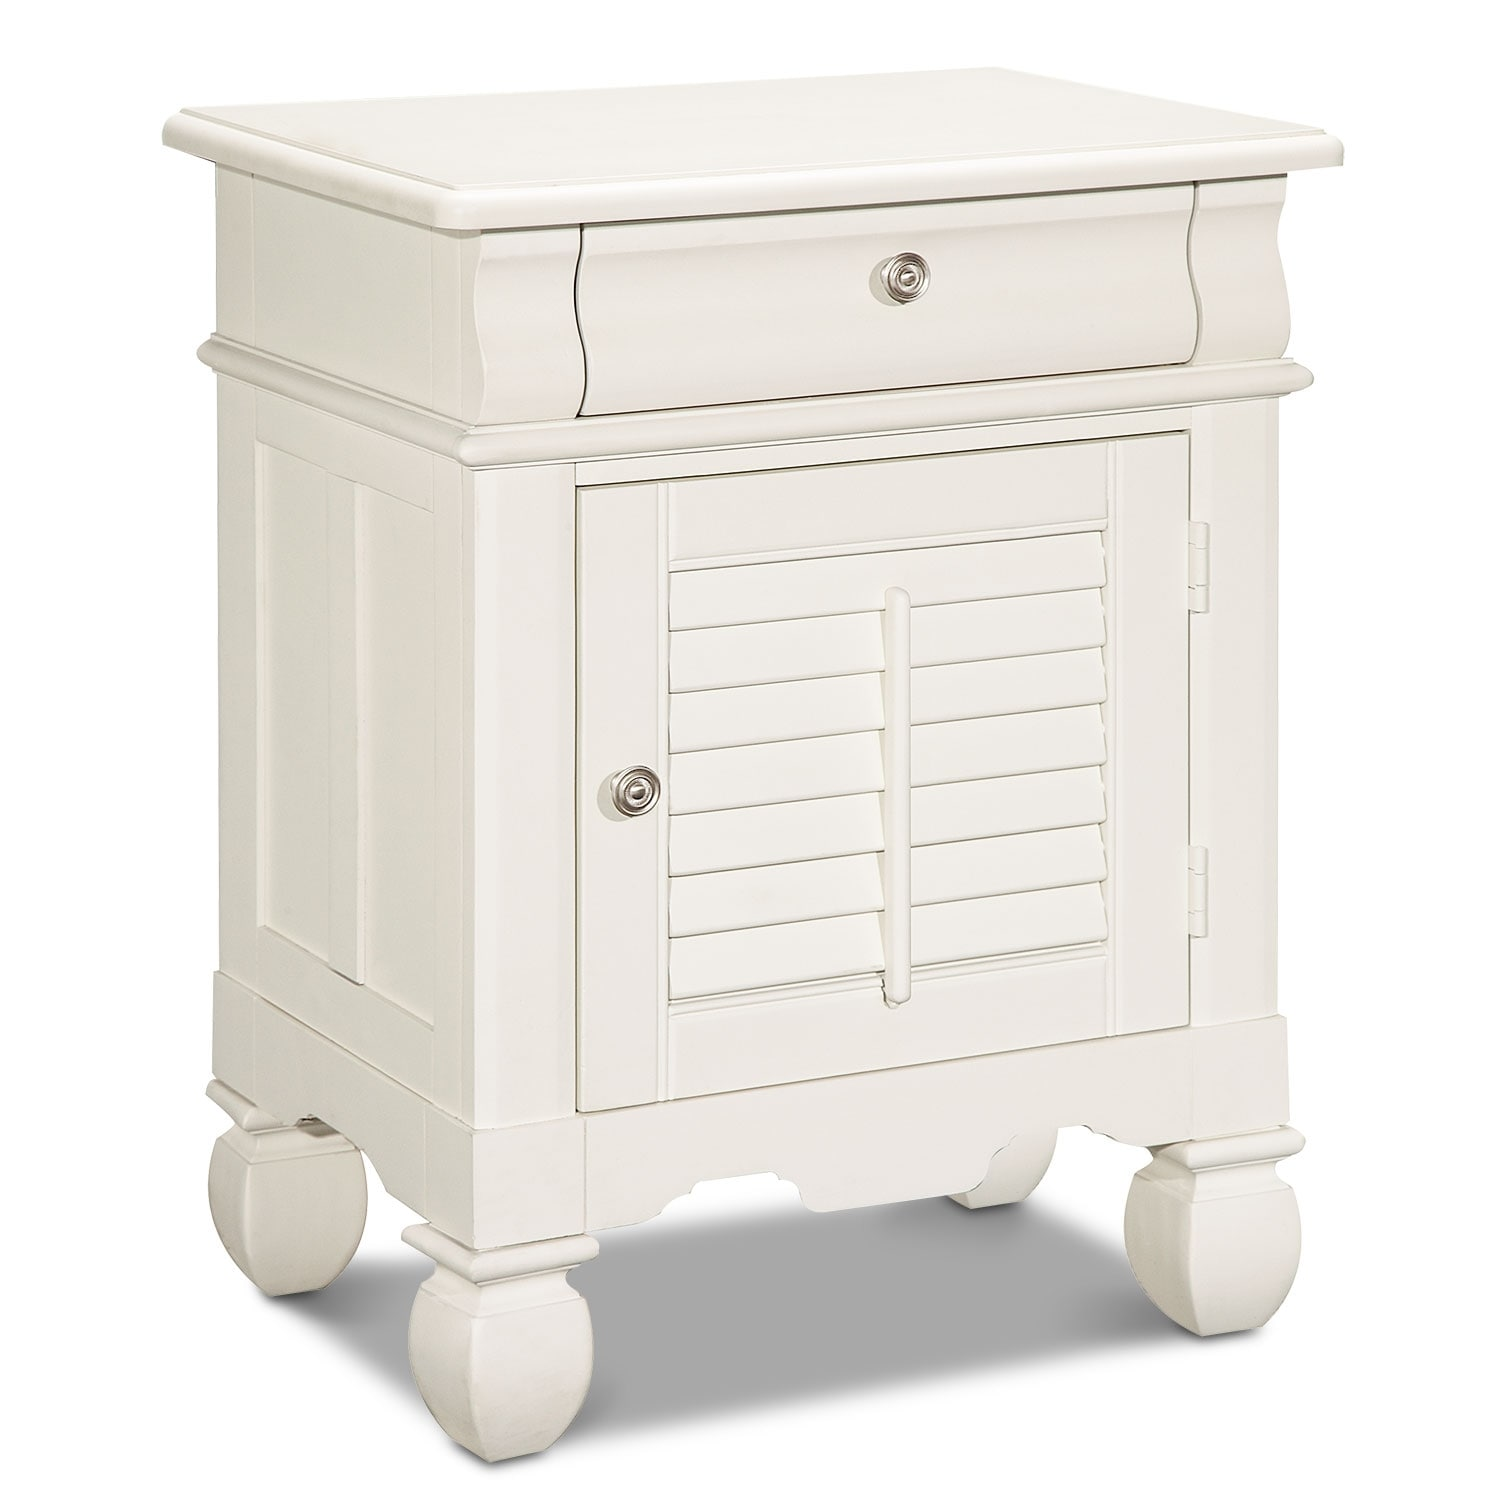 Plantation Cove Door Nightstand - White